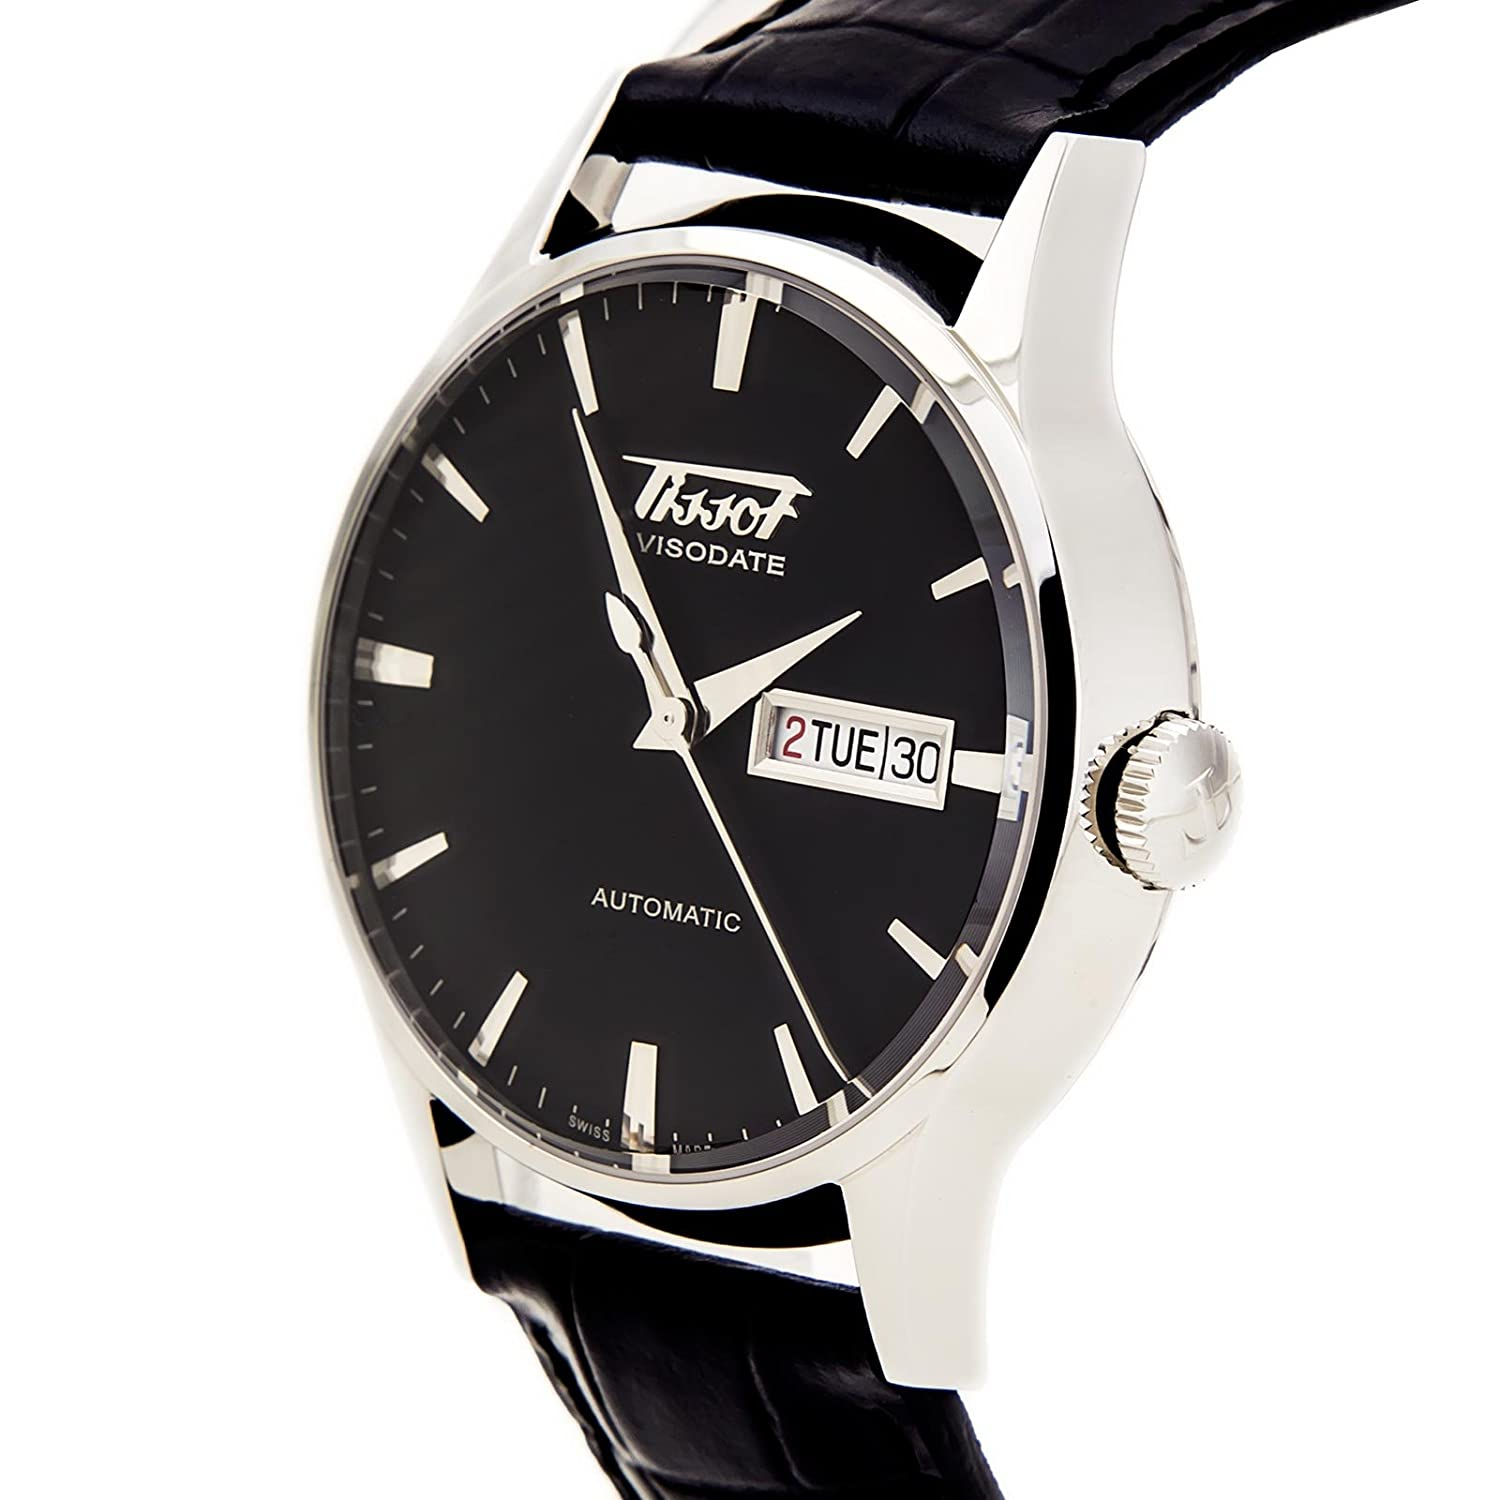 d3ce27d80 Tissot Men's Visodate Automatic Black Watch: Tissot: Amazon.ca: Watches